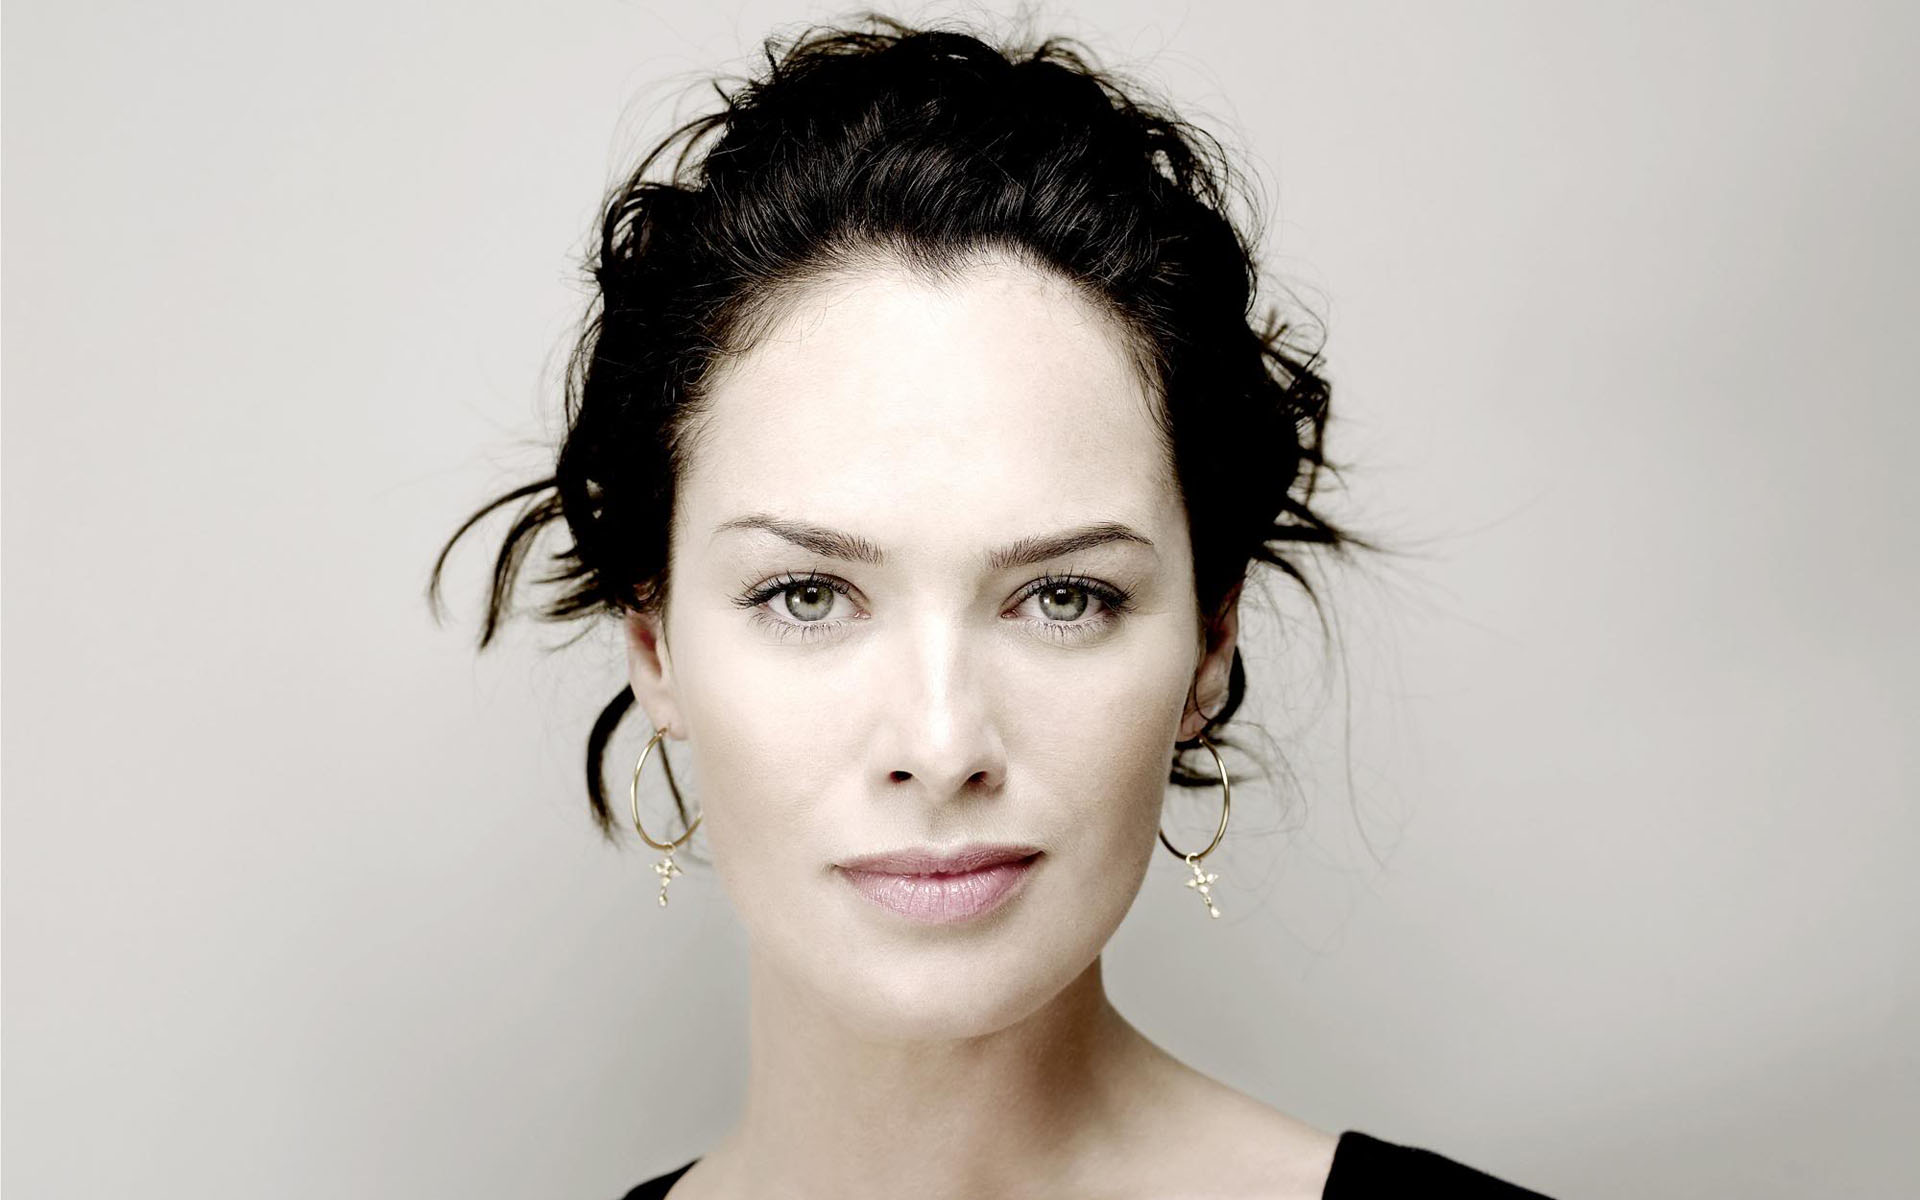 Lena Headey Imdb Hd Images 3 HD Wallpapers